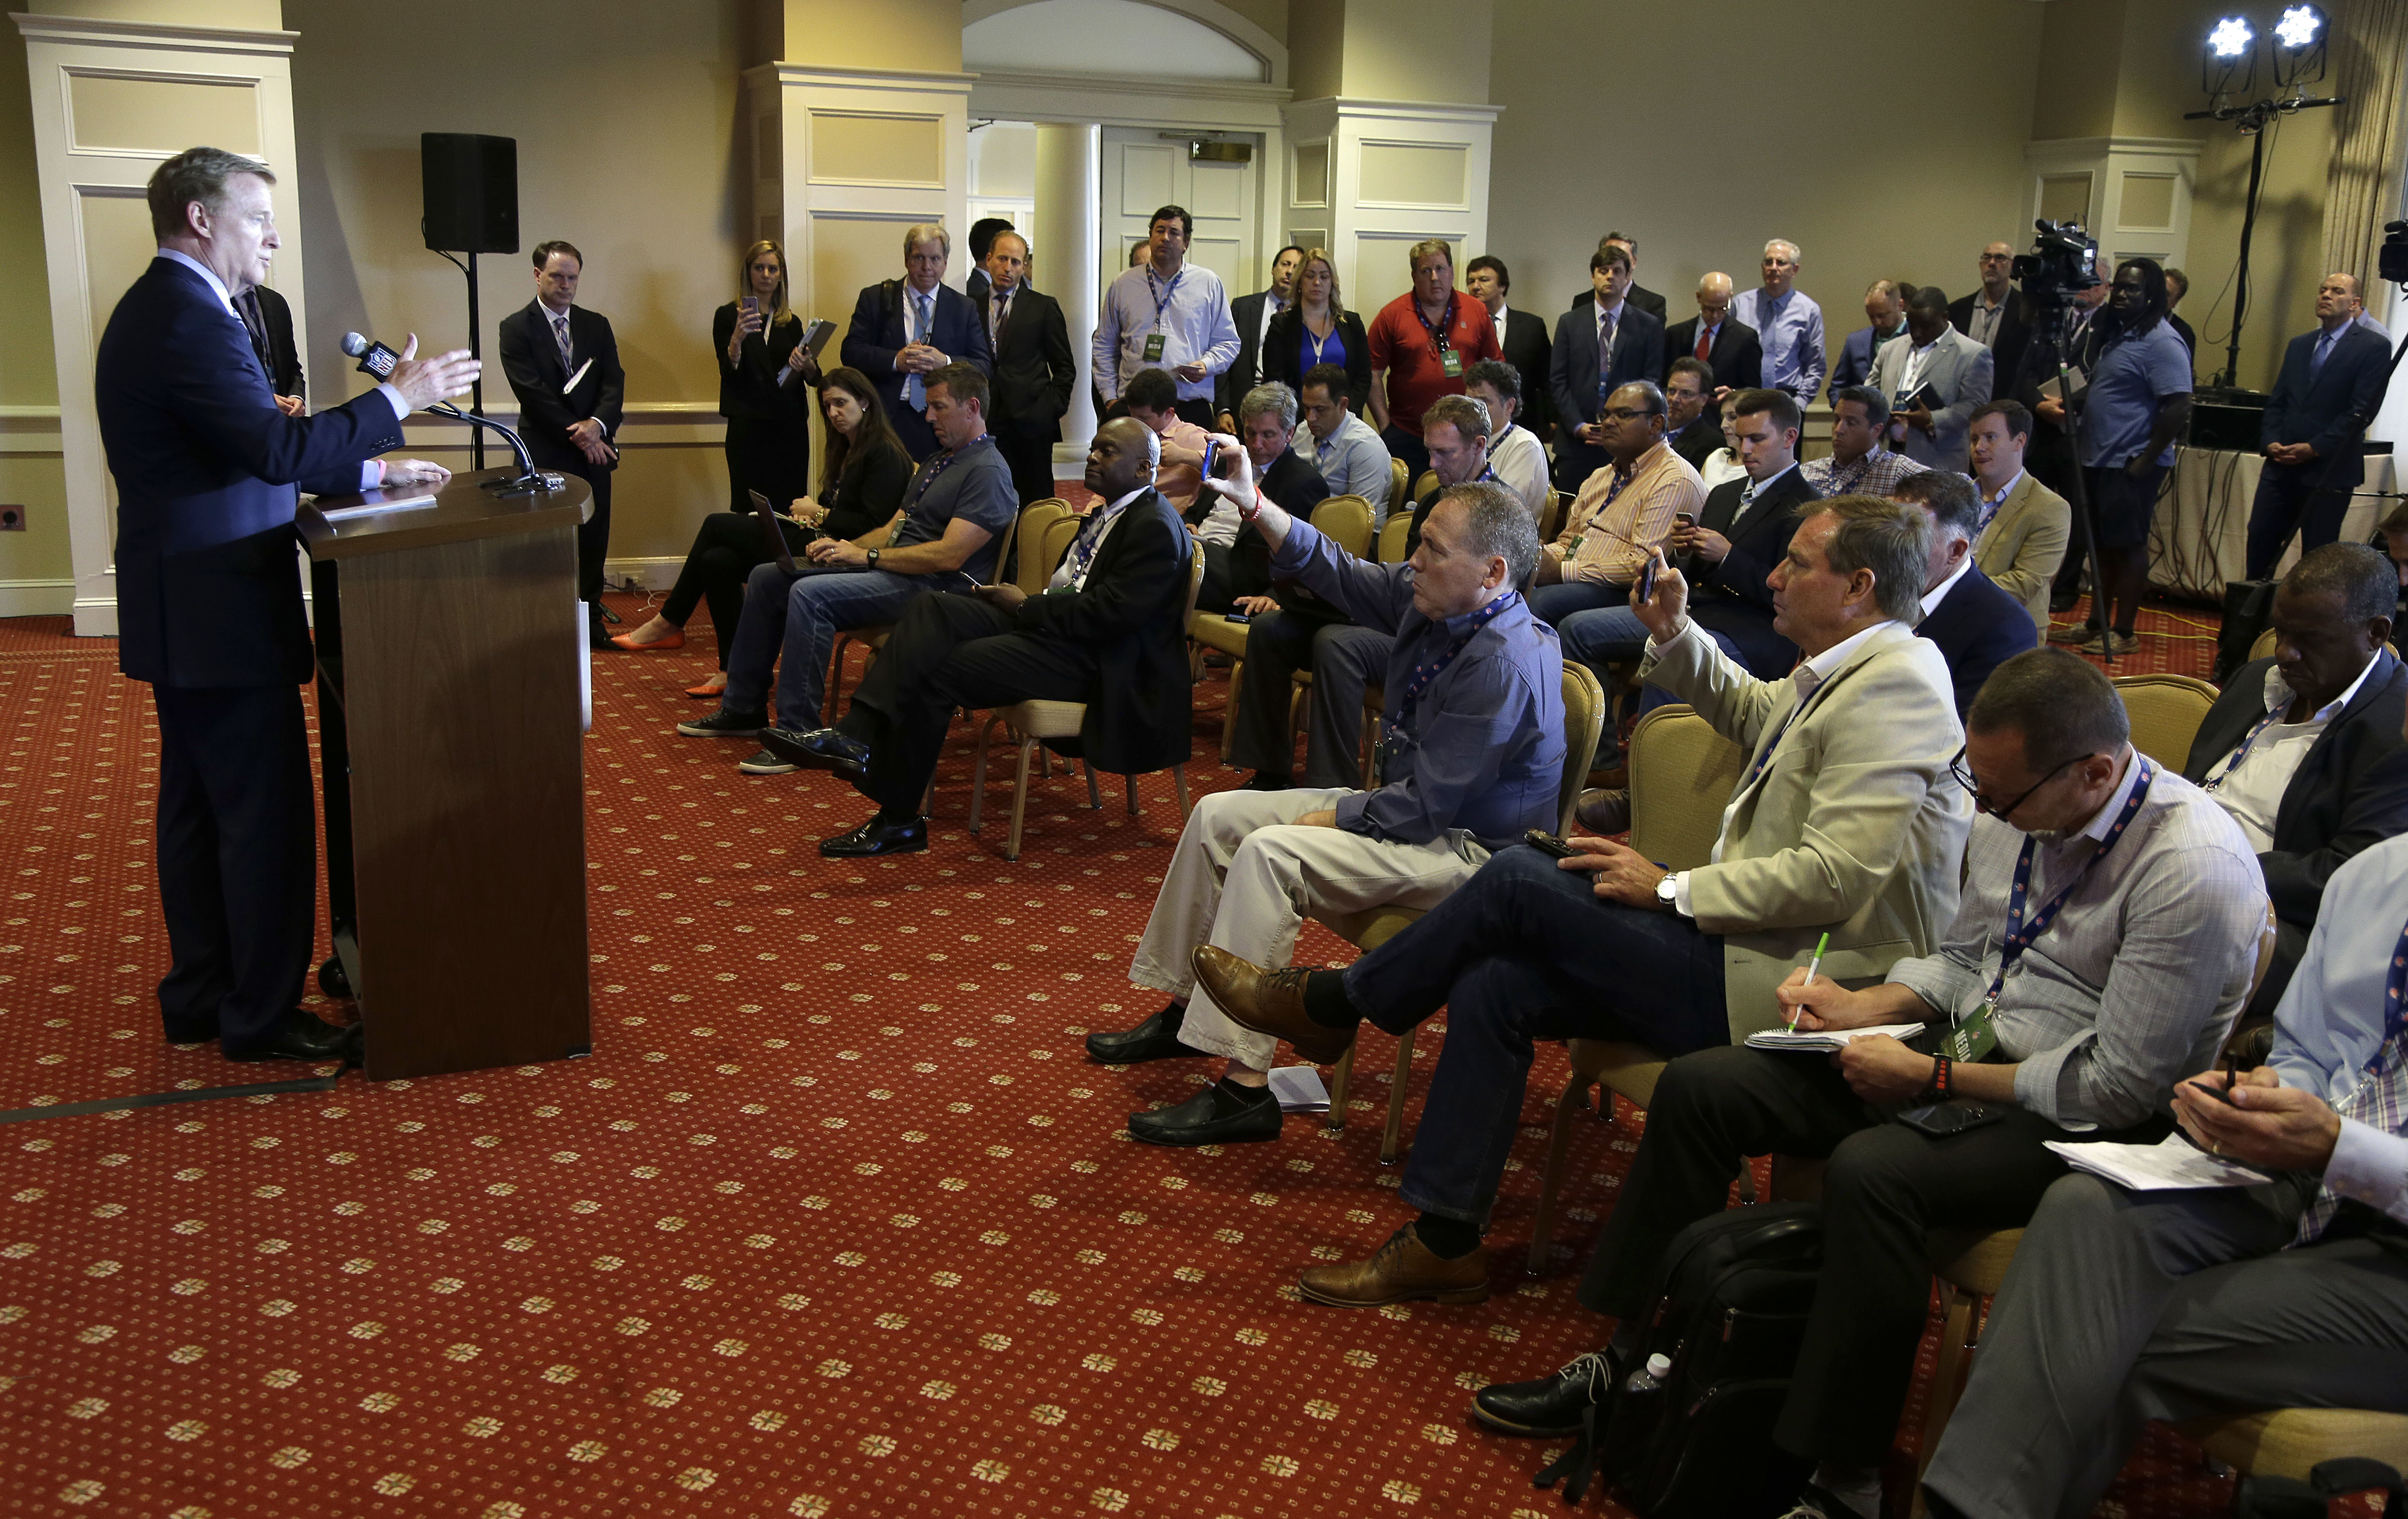 NFL commissioner Roger Goodell answers reporter's questions following a vote that awarded the Super Bowl to Atlanta (2019), Miami (2020) and Los Angeles (2021) at the NFL owner's meeting in Charlotte N.C., Tuesday, May 24, 2016. (AP Photo/Bob Leverone)